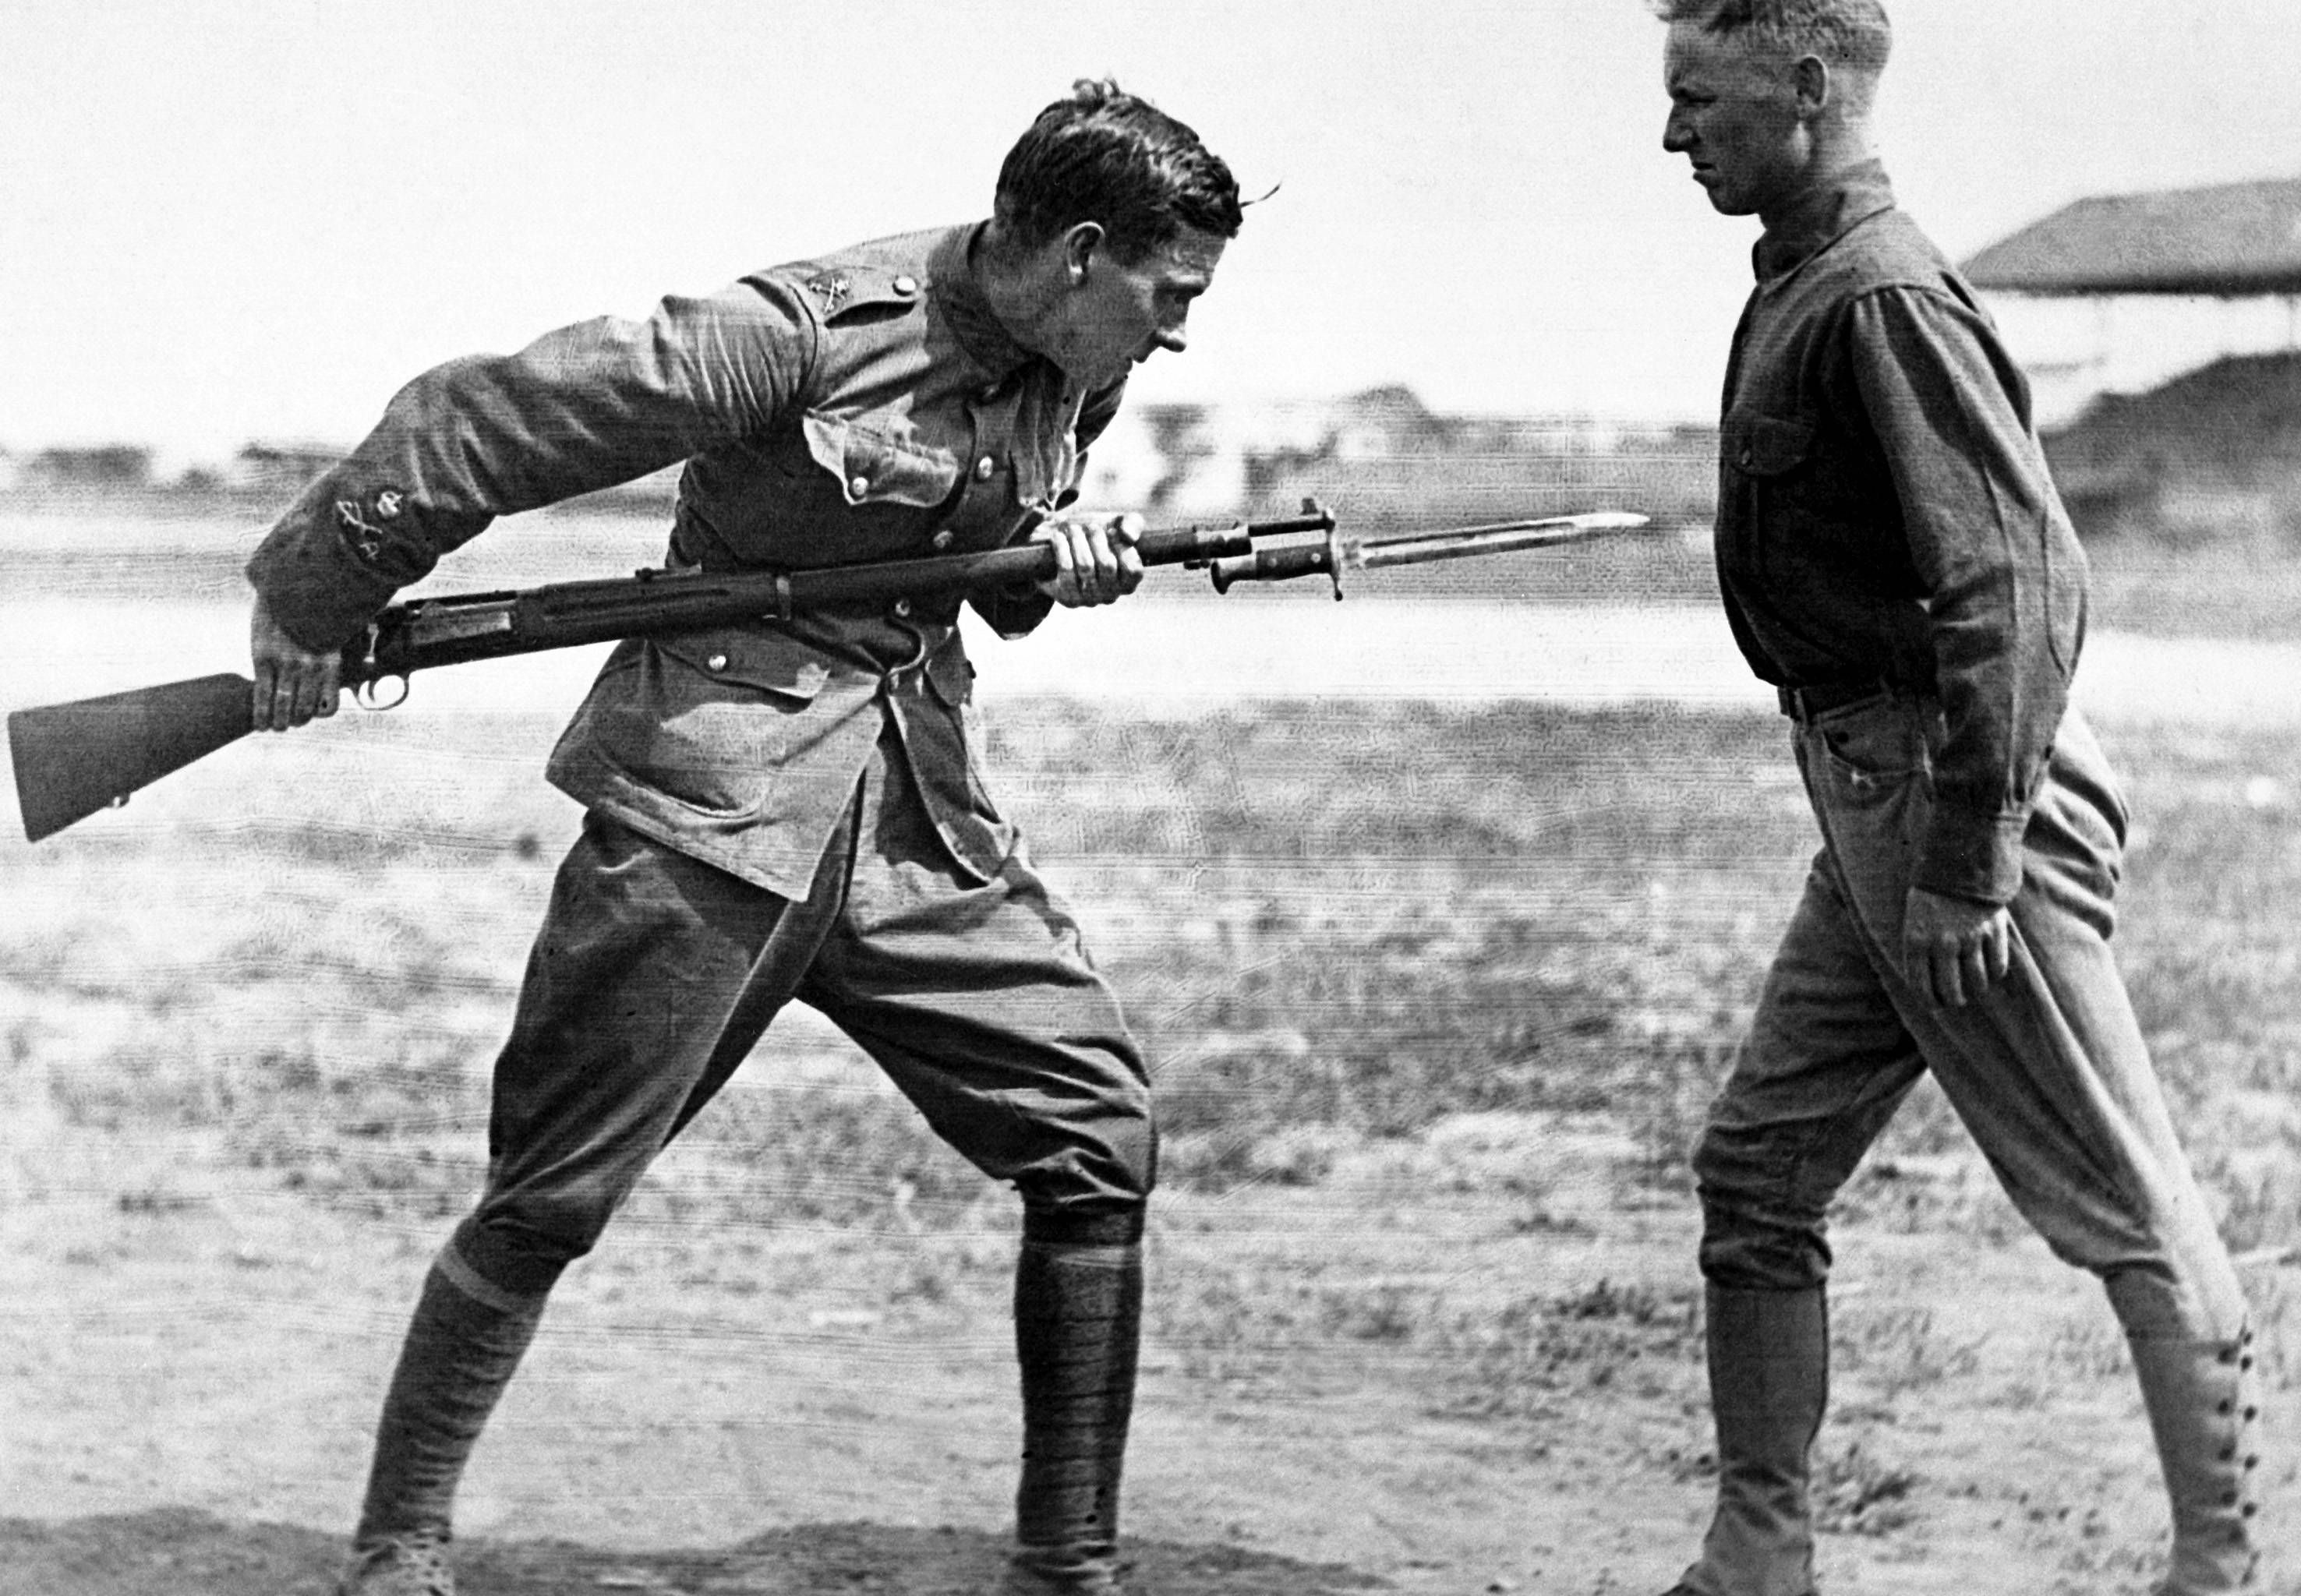 Pictures of world war 1 bayonets